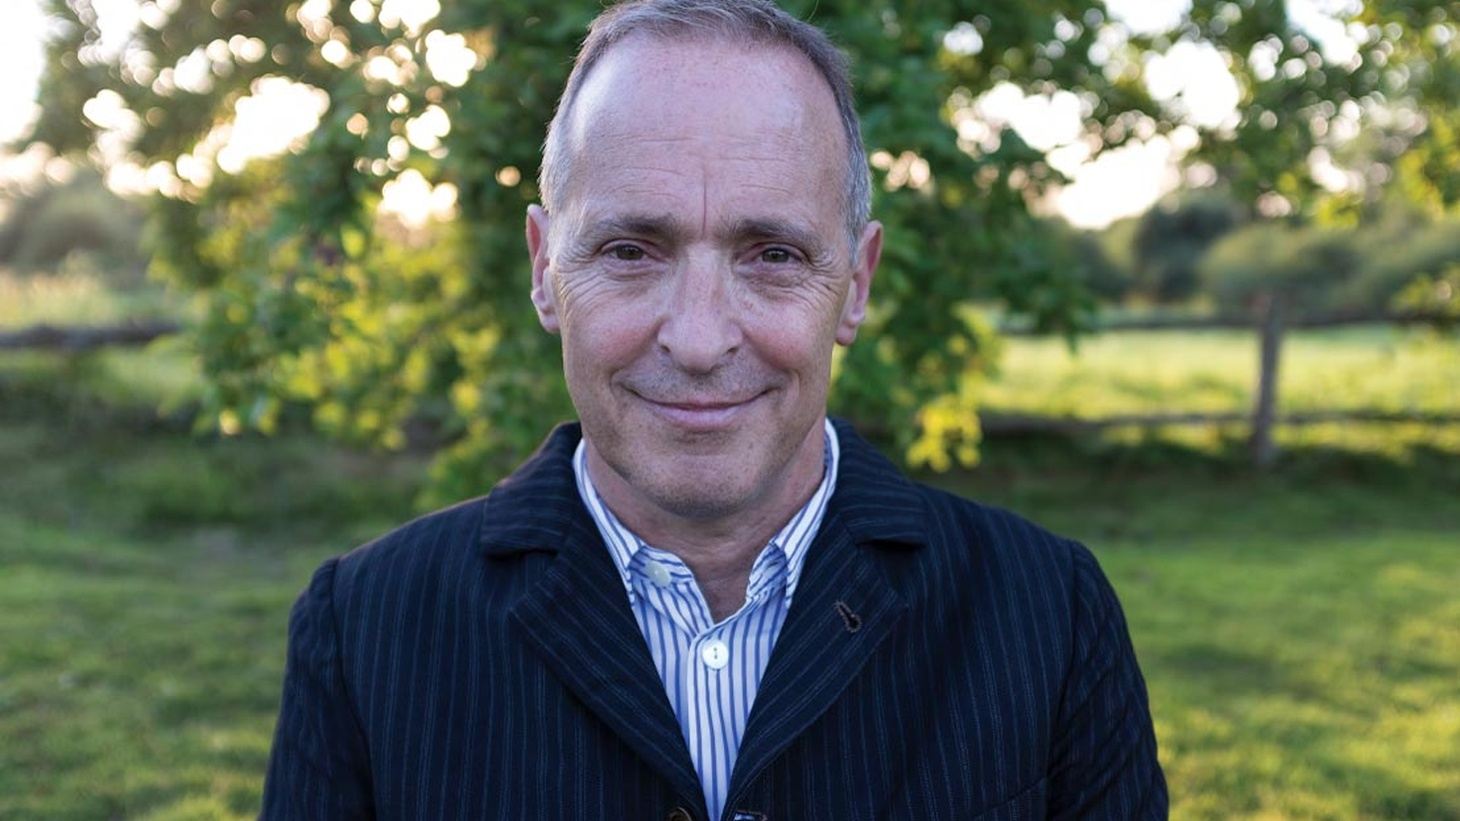 Author David Sedaris talks about what it was like going through his old diaries for his new book. He also explains why he'll go months without realizing his phone's been on airplane mode, but he'll notice many little humorous things in life that other people miss.